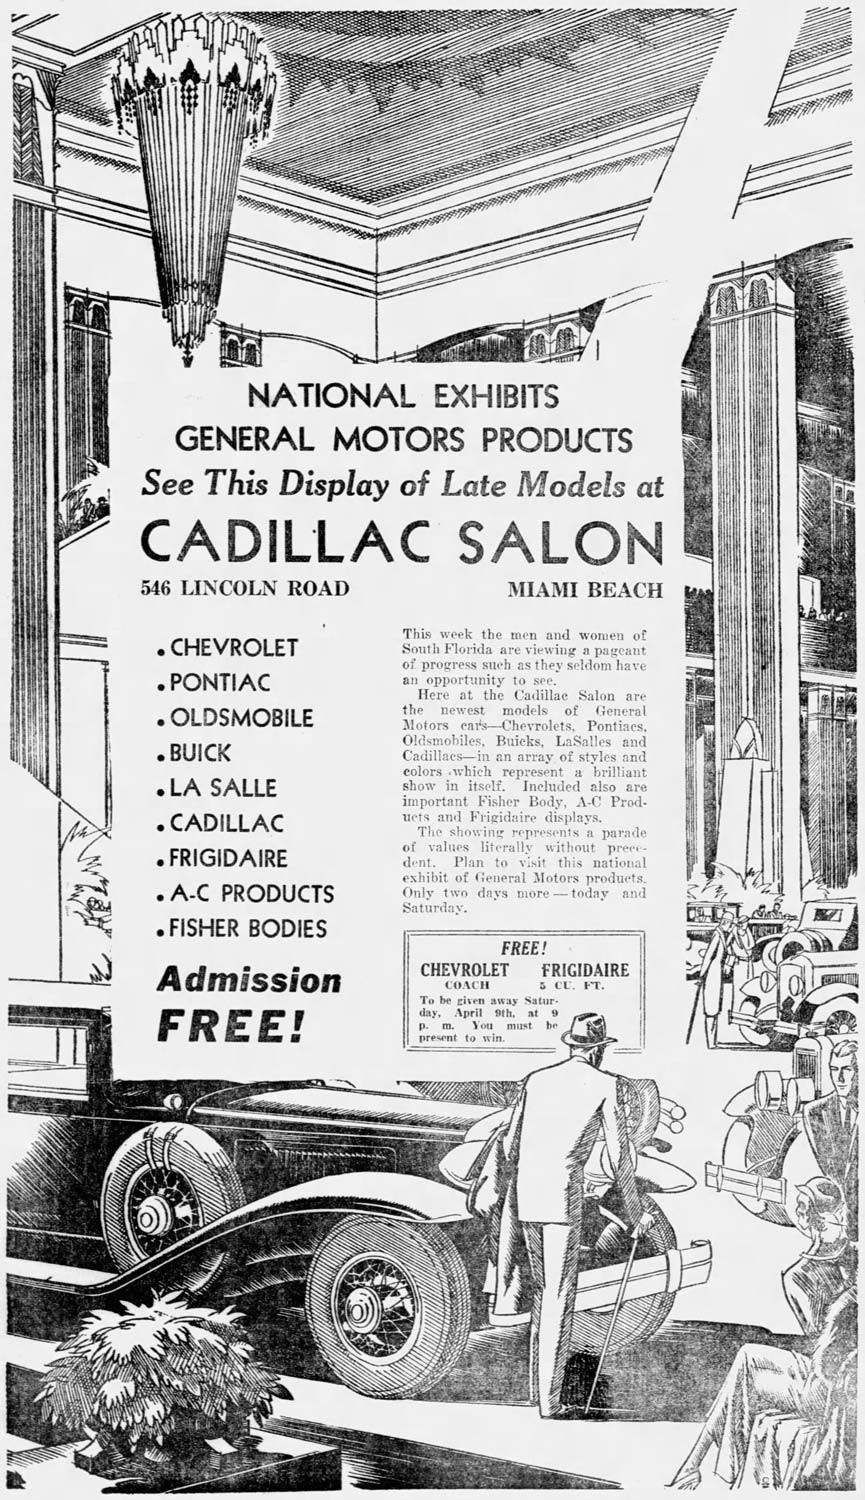 An ad from the Miami News on April 8, 1932.